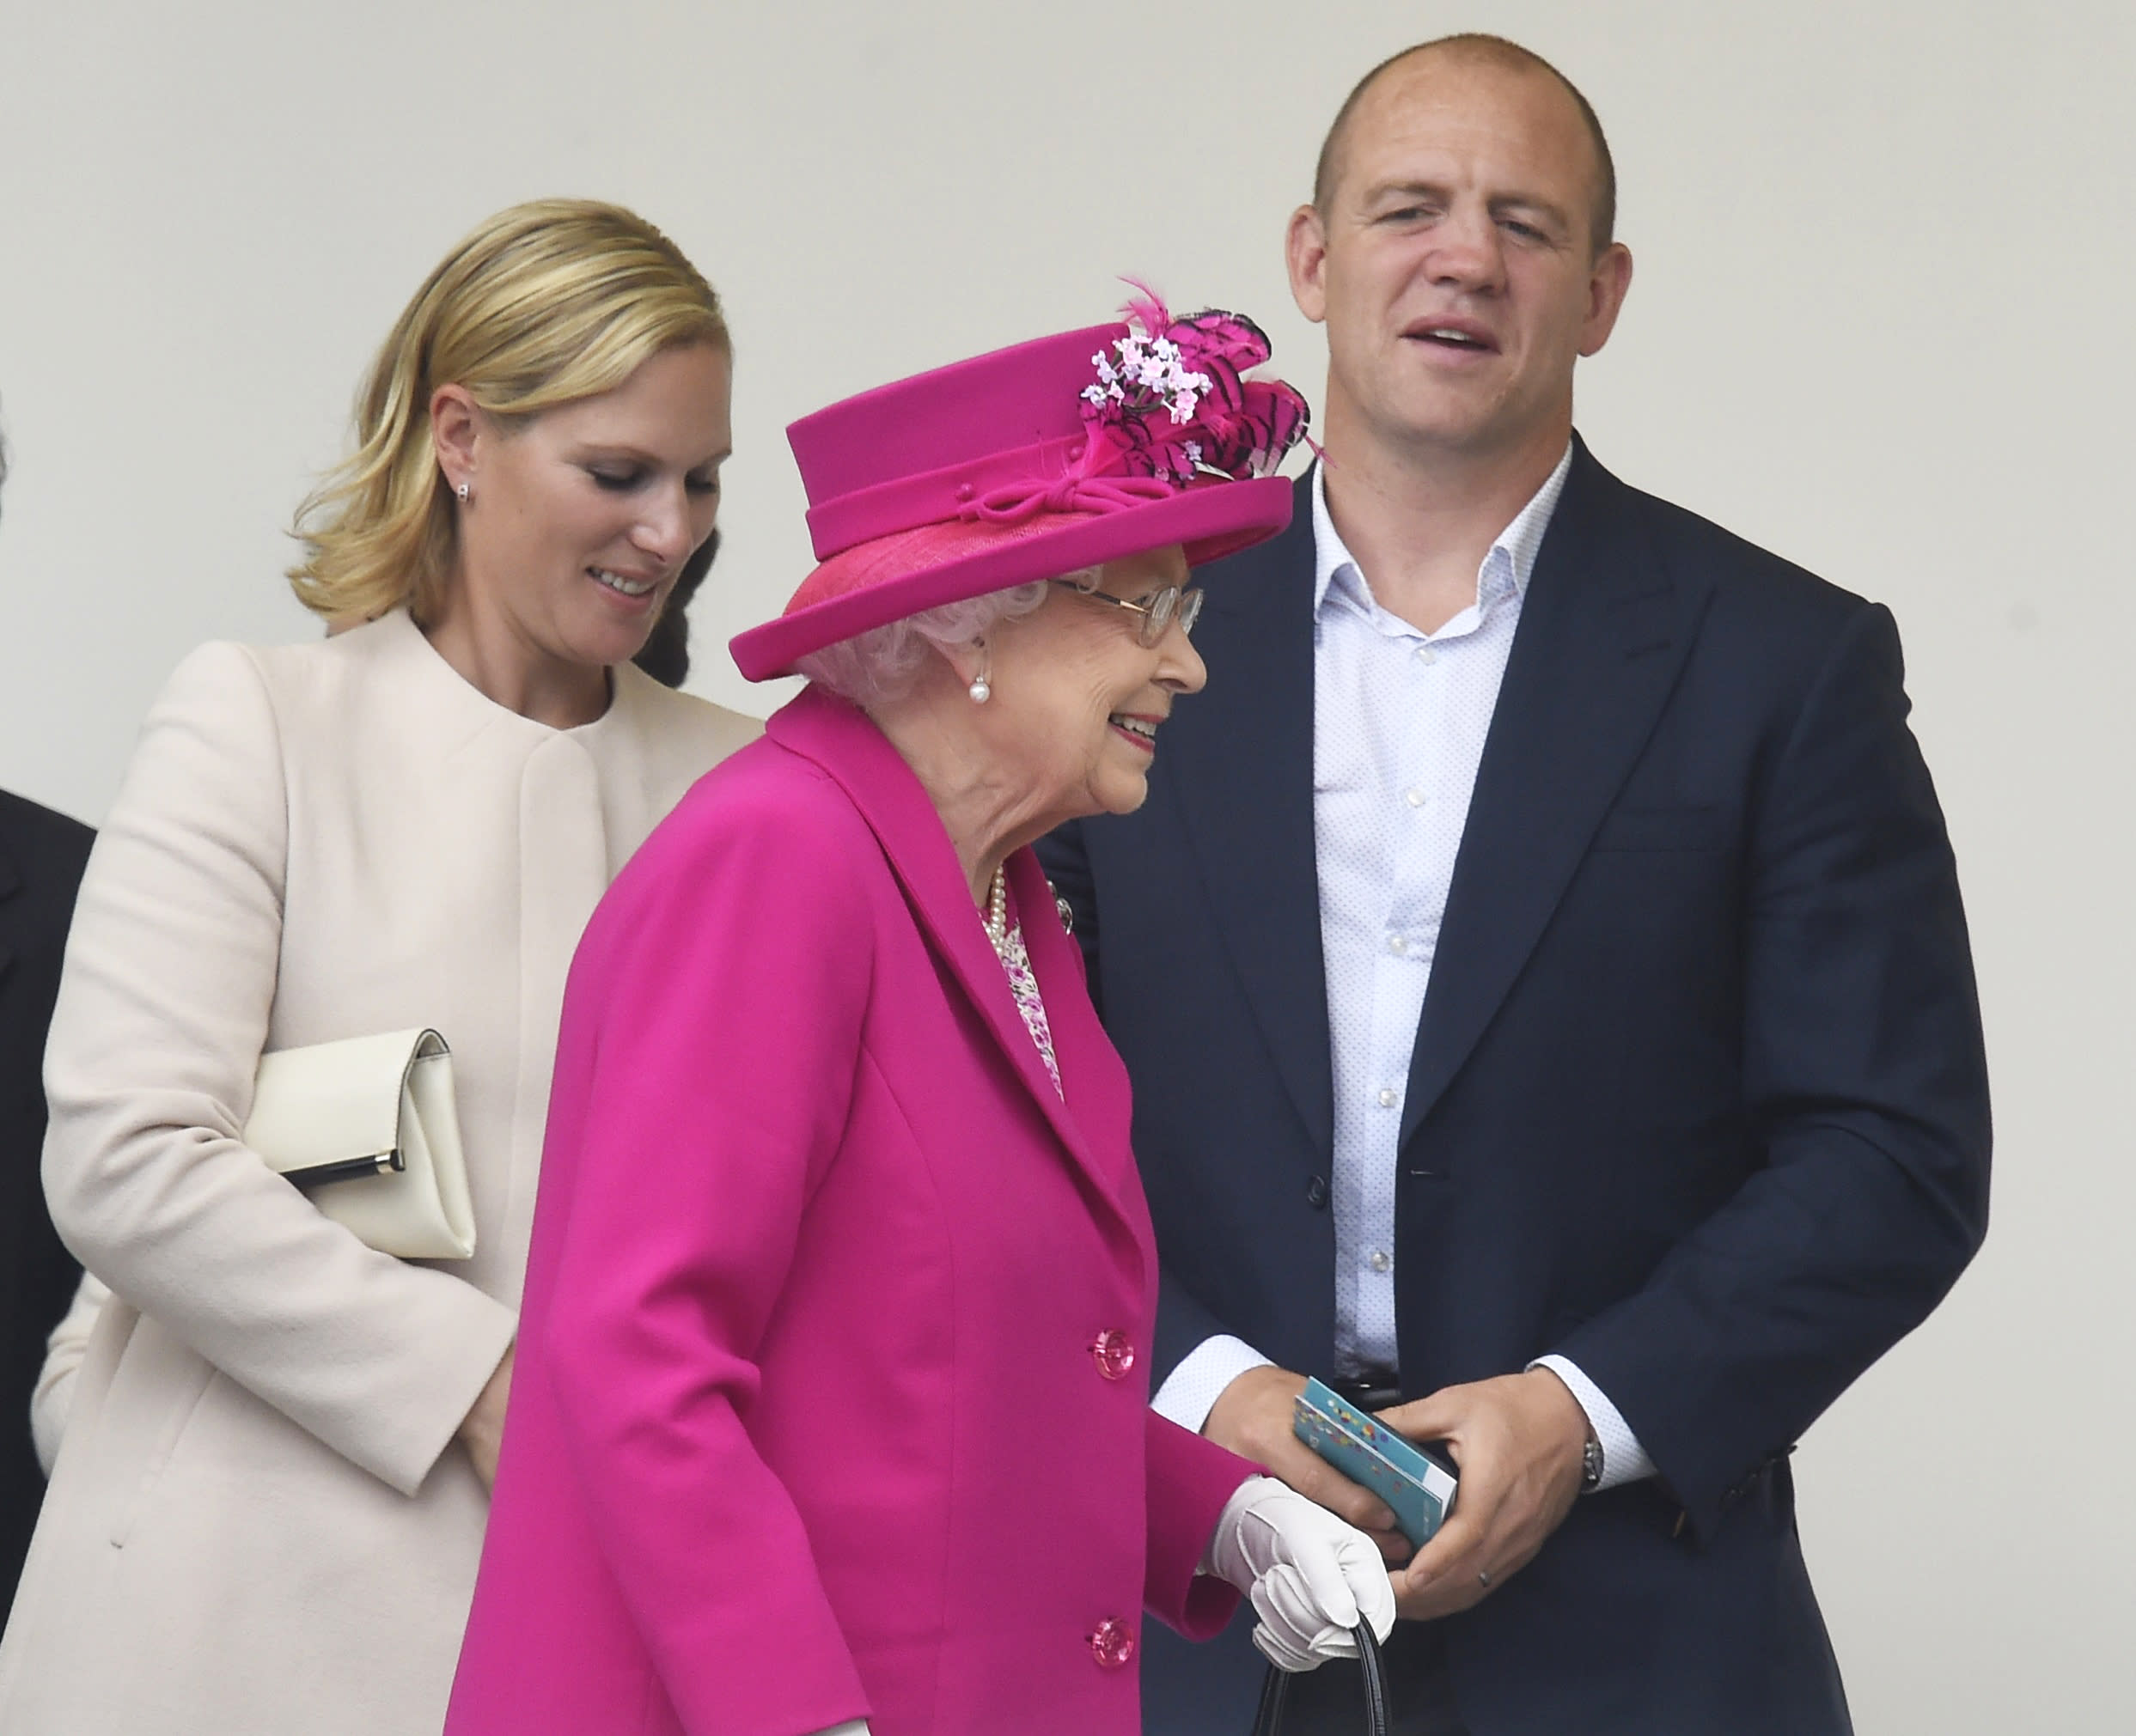 Zara and Mike Tindall leave with Britain's Queen Elizabeth after they attended the Patron's Lunch on the Mall, an event to mark the queen's 90th birthday, in London, June 12, 2016.   REUTERS/Toby Melville